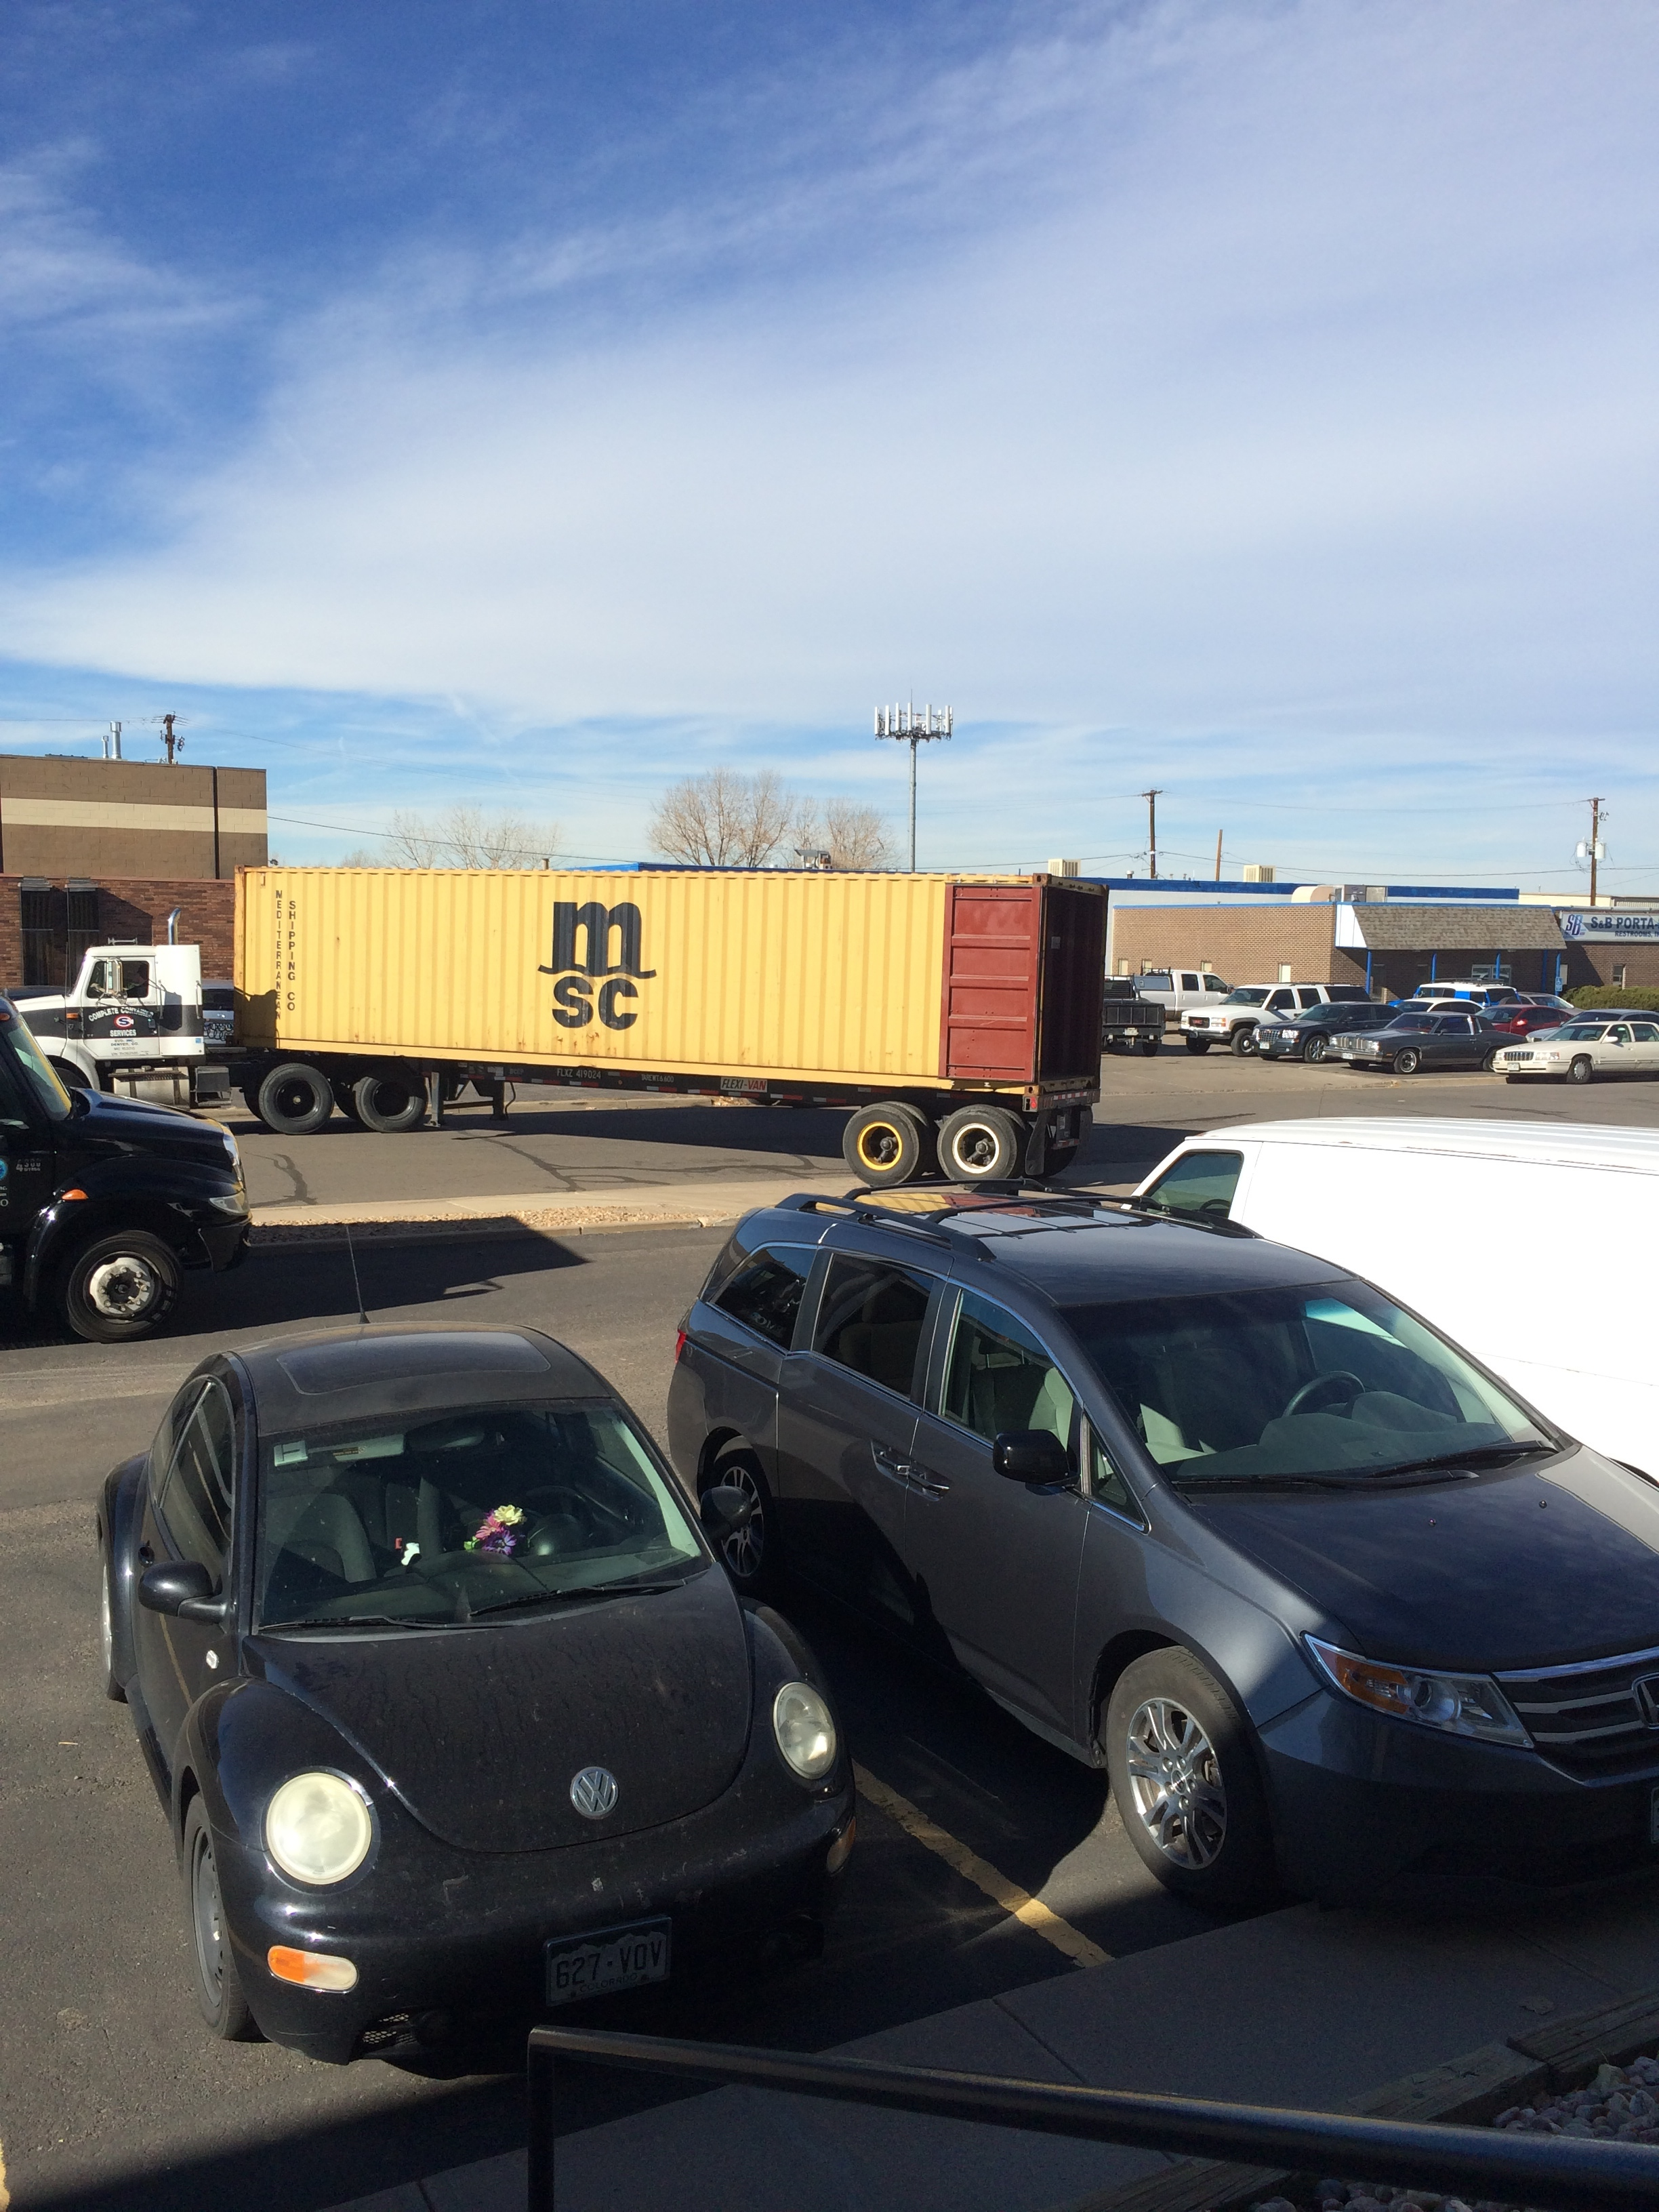 Here comes our container, into which the warehouse guys transferred all of our stuff, built a wall, and then drove our swagger wagon in it (the van pictured in frontwas a gift and cars in Europe are super expensive, so we're taking it with us!).